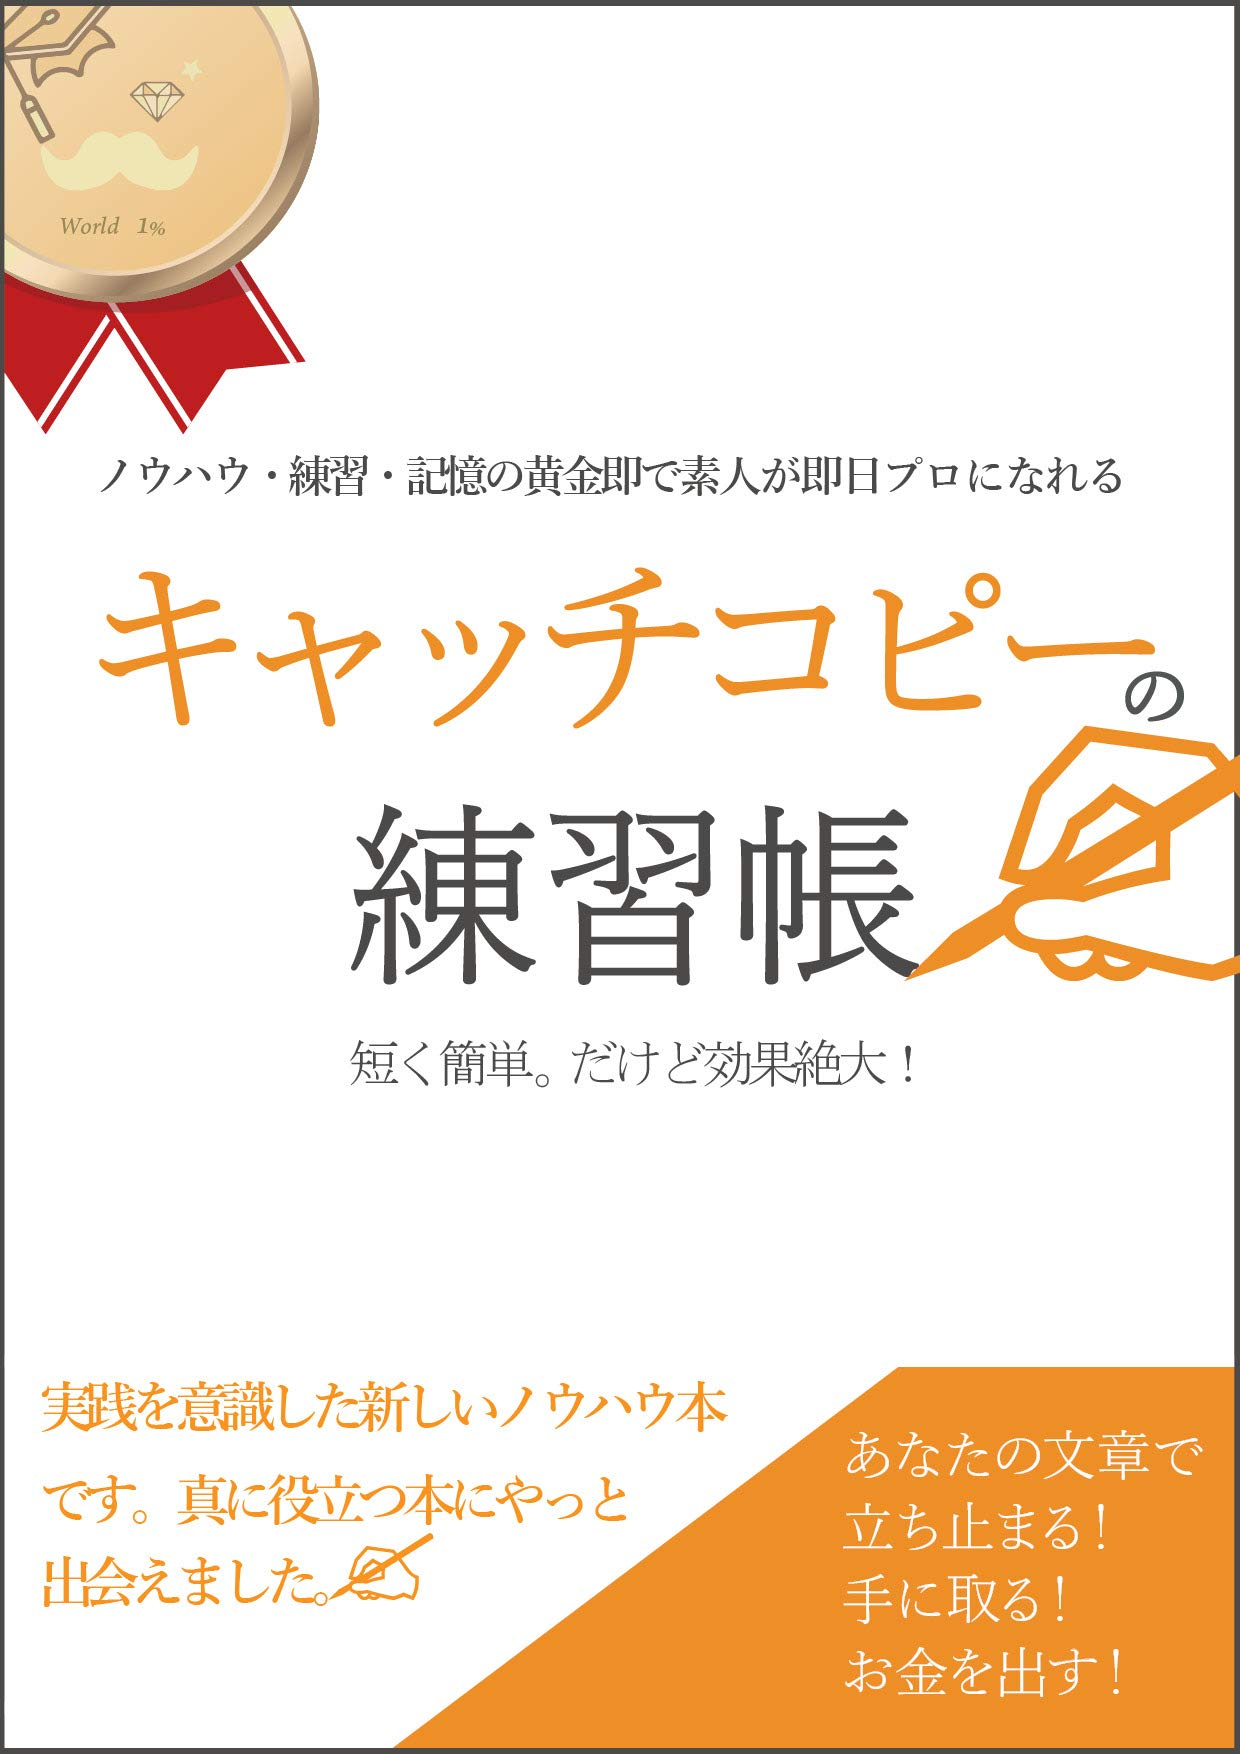 Catch Copy Workbook for the Beginners: Short Simple Phenomenal Become a Professional Instantly (World One Institution) (Japanese Edition)